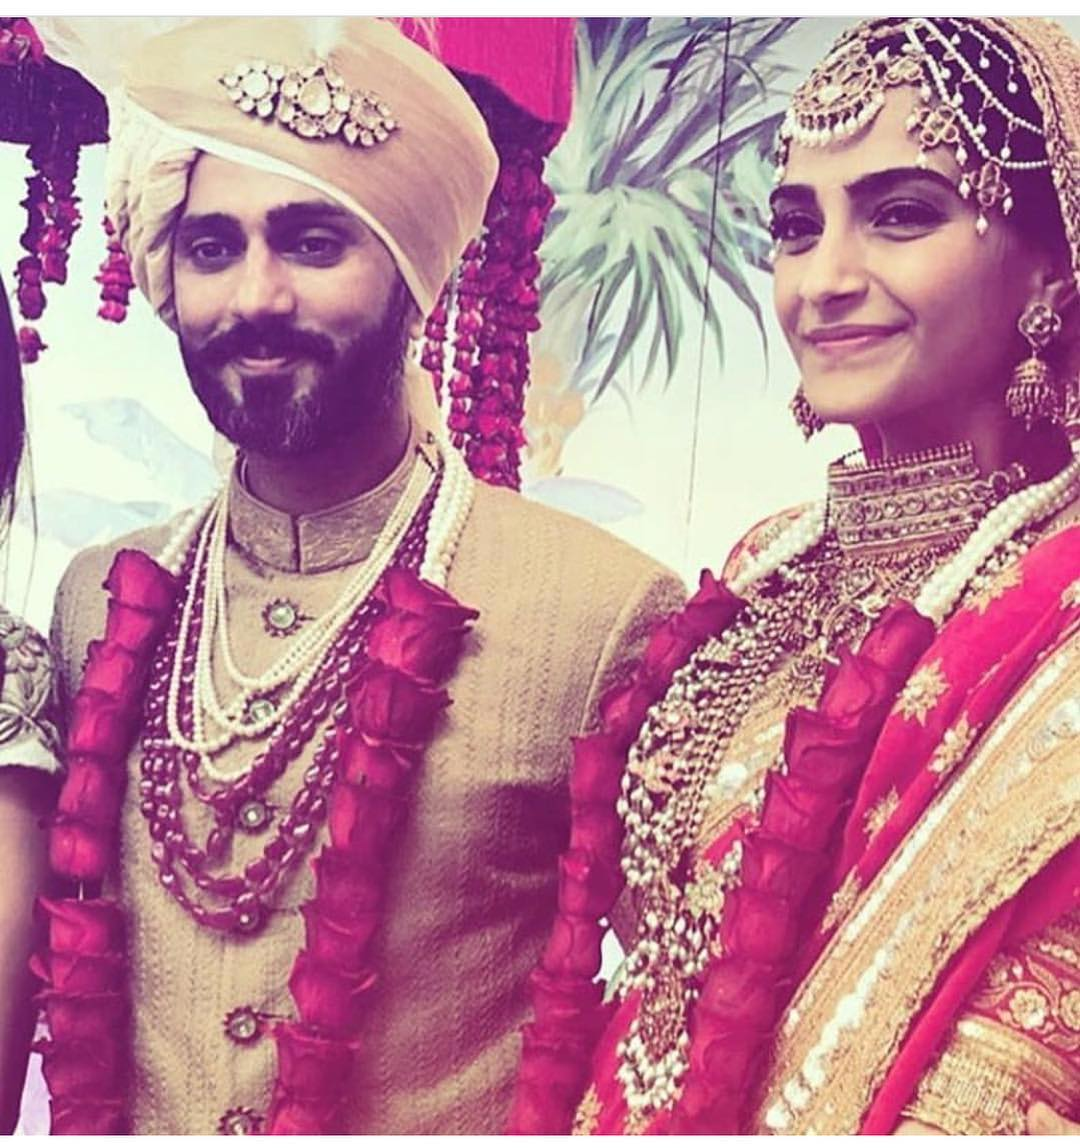 27-2 Sonam Kapoor Wedding Pics - Engagement and Complete Wedding Pictures